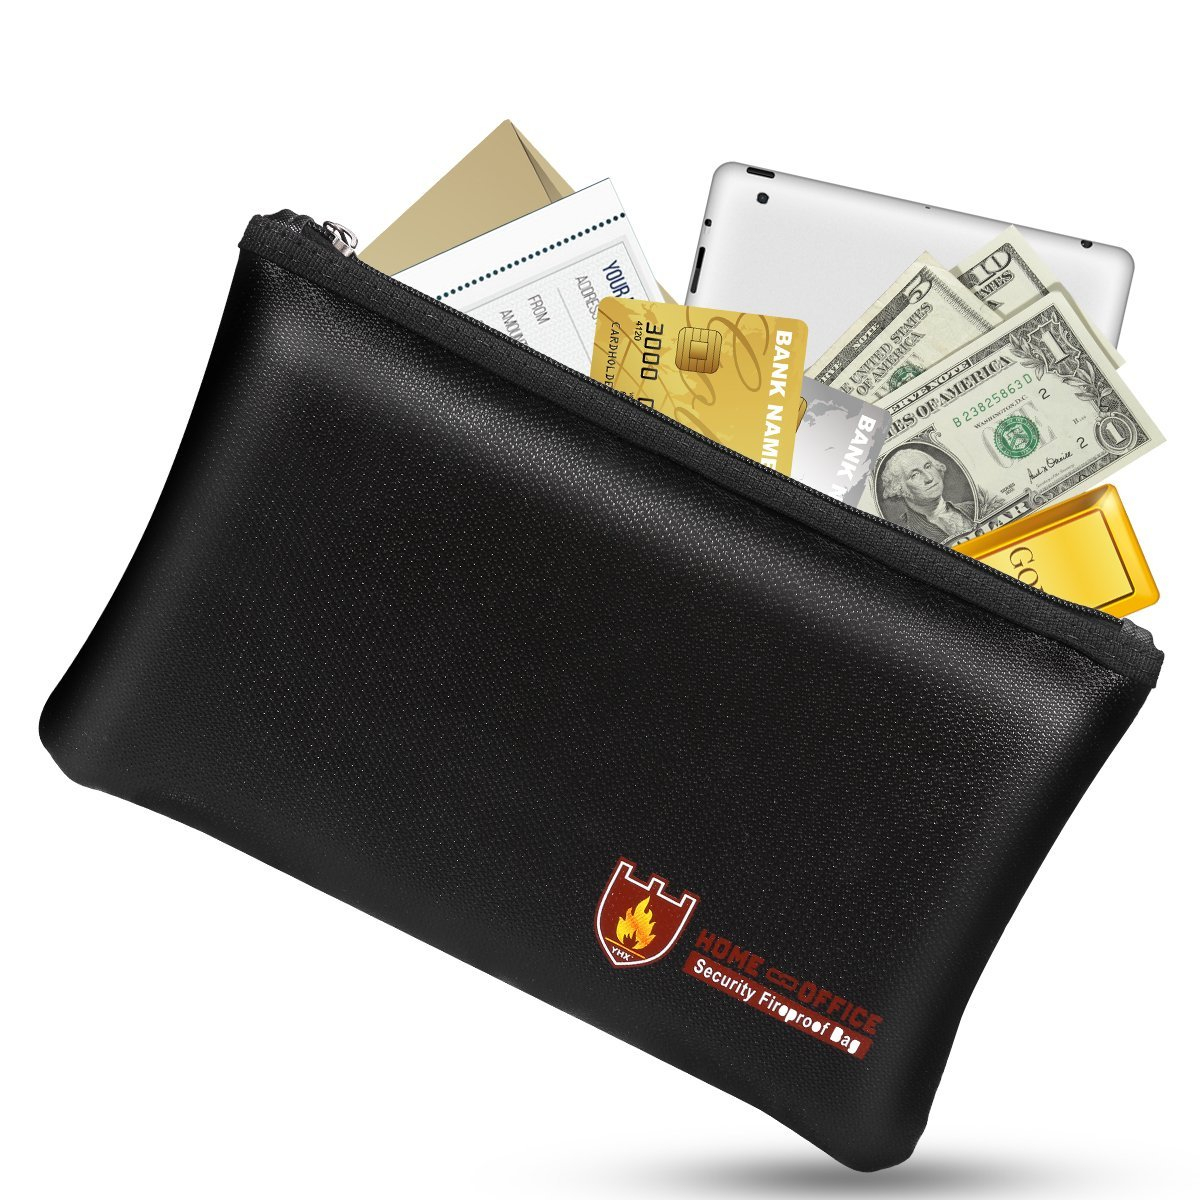 Fireproof Money Safe Document Bag. NON-ITCHY Silicone Coated Fire & Water Resistant Safe Cash Bag. Fireproof Safe Storage for A5 Size File Folder Holder, Money, Document, Ipad, Jewelry and Passport by Bruce store